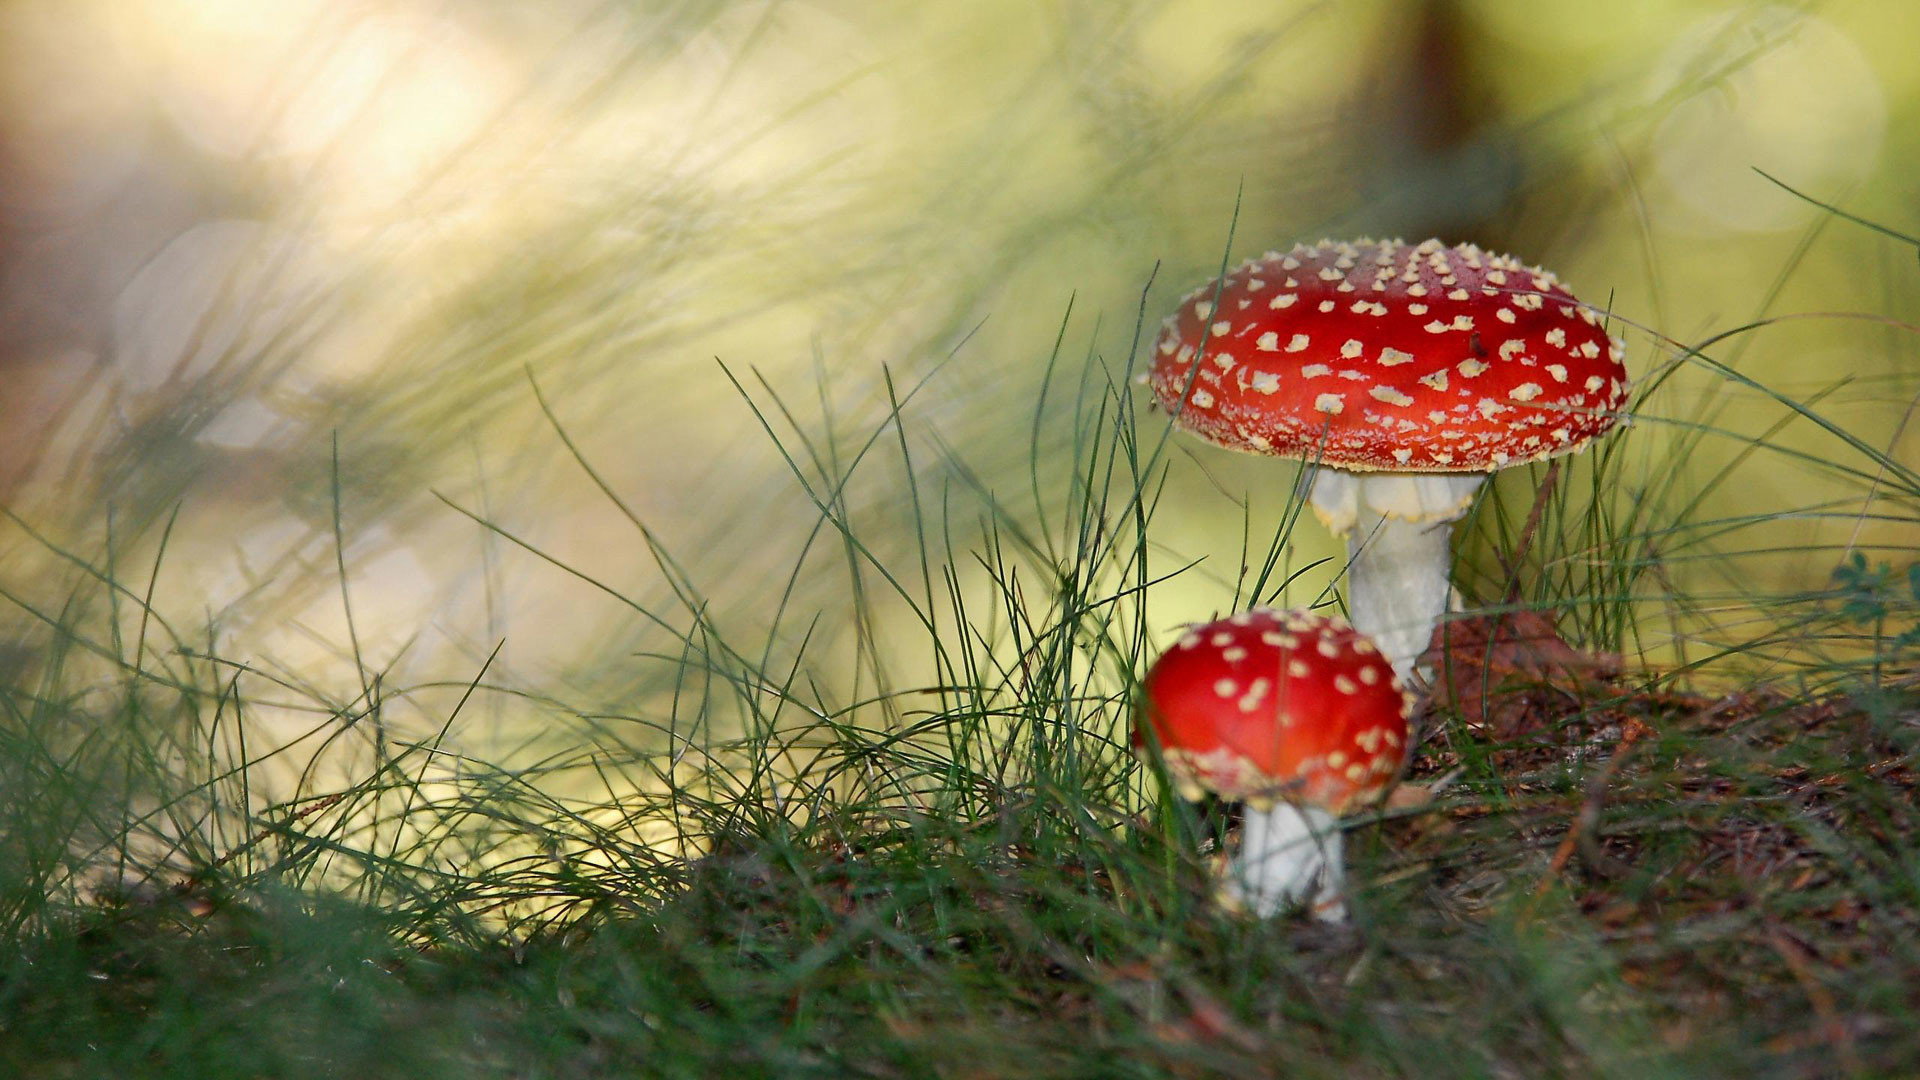 Res: 1920x1080, Mushrooms Wallpapers Magic Mushrooms Cupboards Buttons Nature